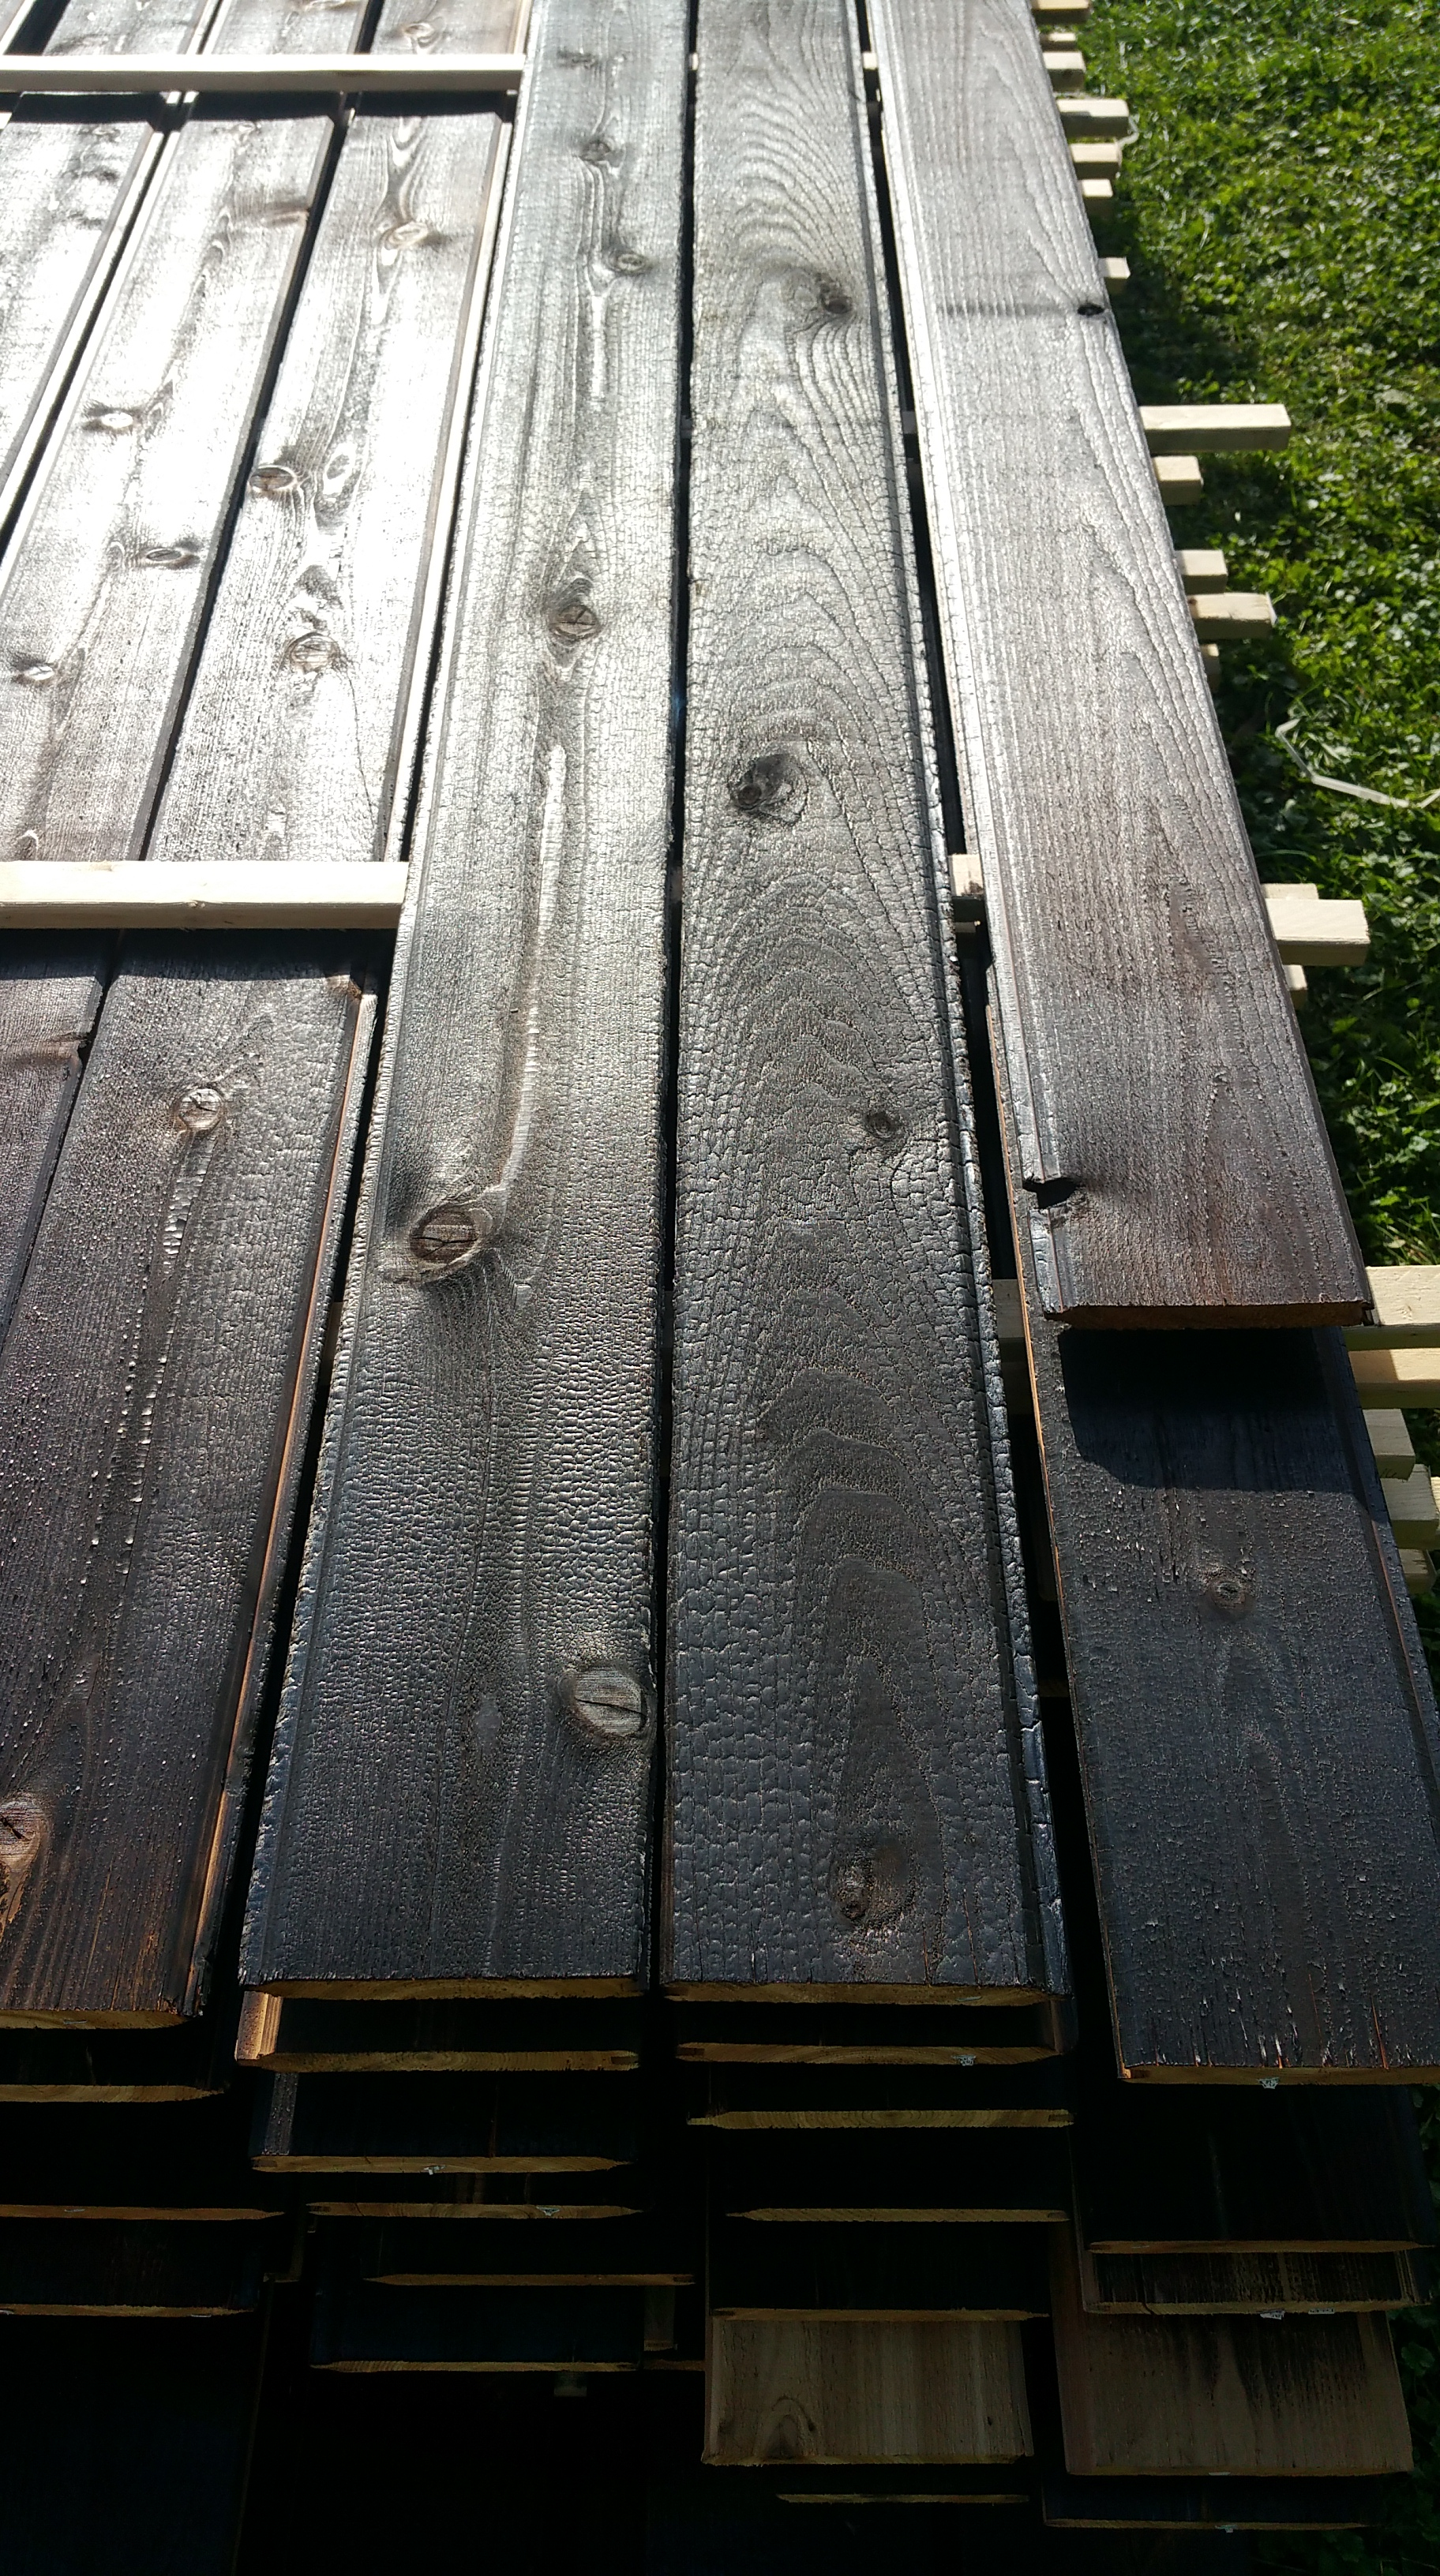 charred-cedar-texture-long-view-of-pile